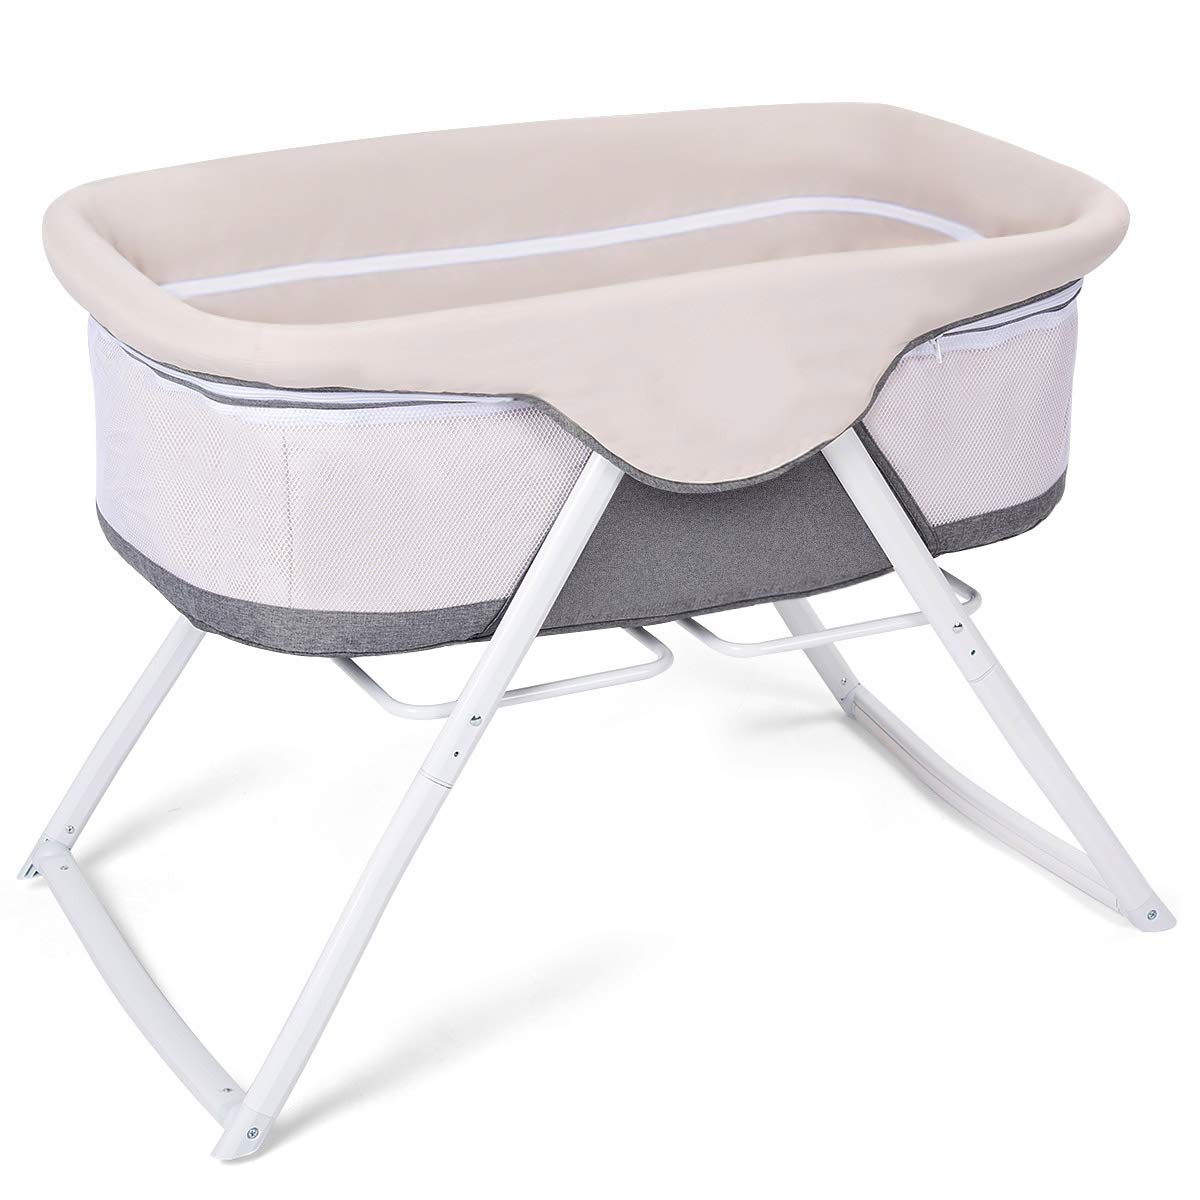 Costzon Baby Bassinet, 2 in 1 Lightweight Rocking Crib with Detachable & Washable Mattress, Breathable Side Mesh, Portable Oxford Carry Bag (Gray)